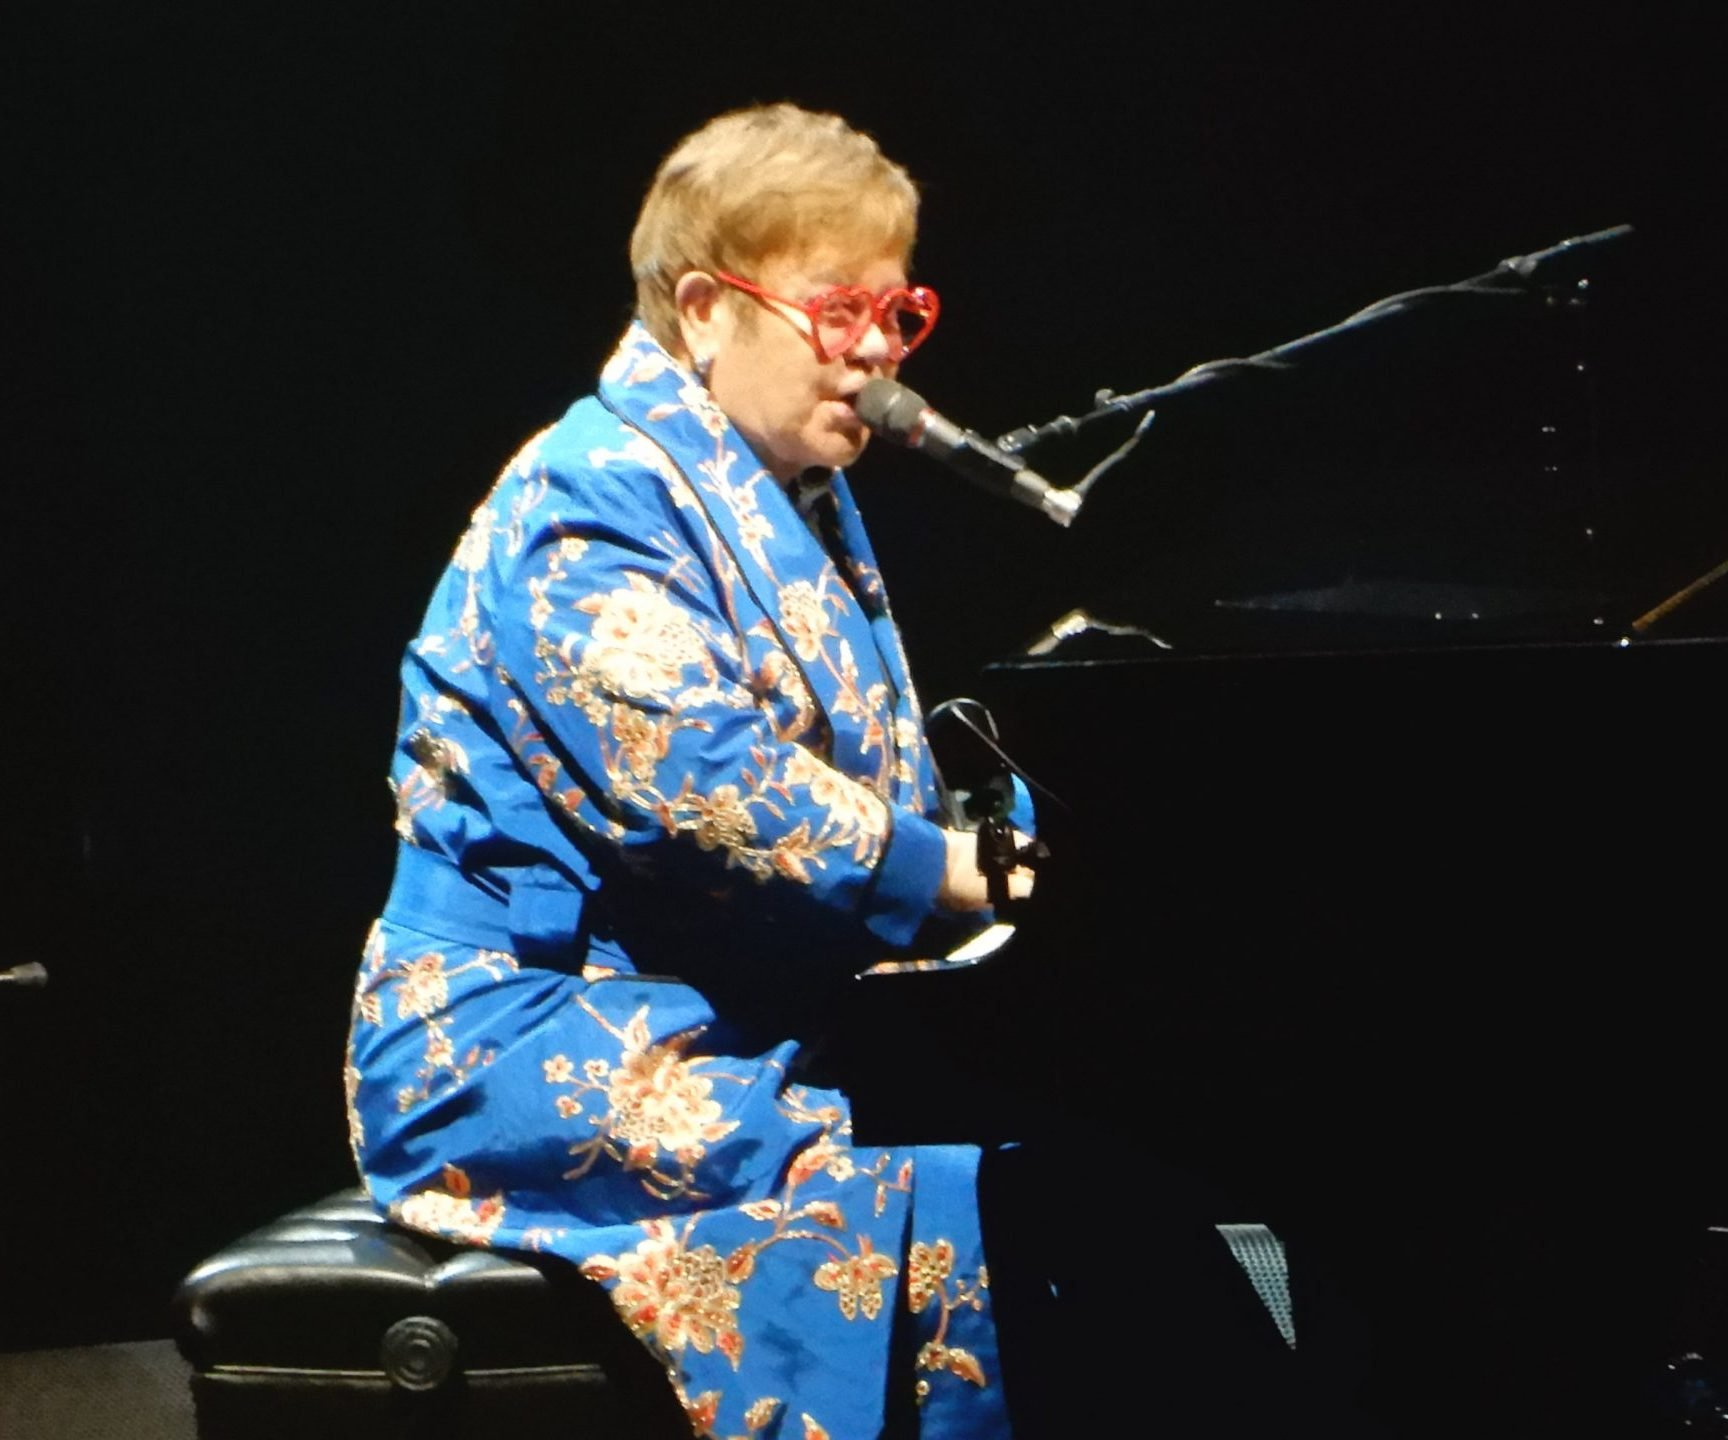 30852159947 bdaee37f64 4k scaled e1616667486826 23 Things You Didn't Know About Elton John